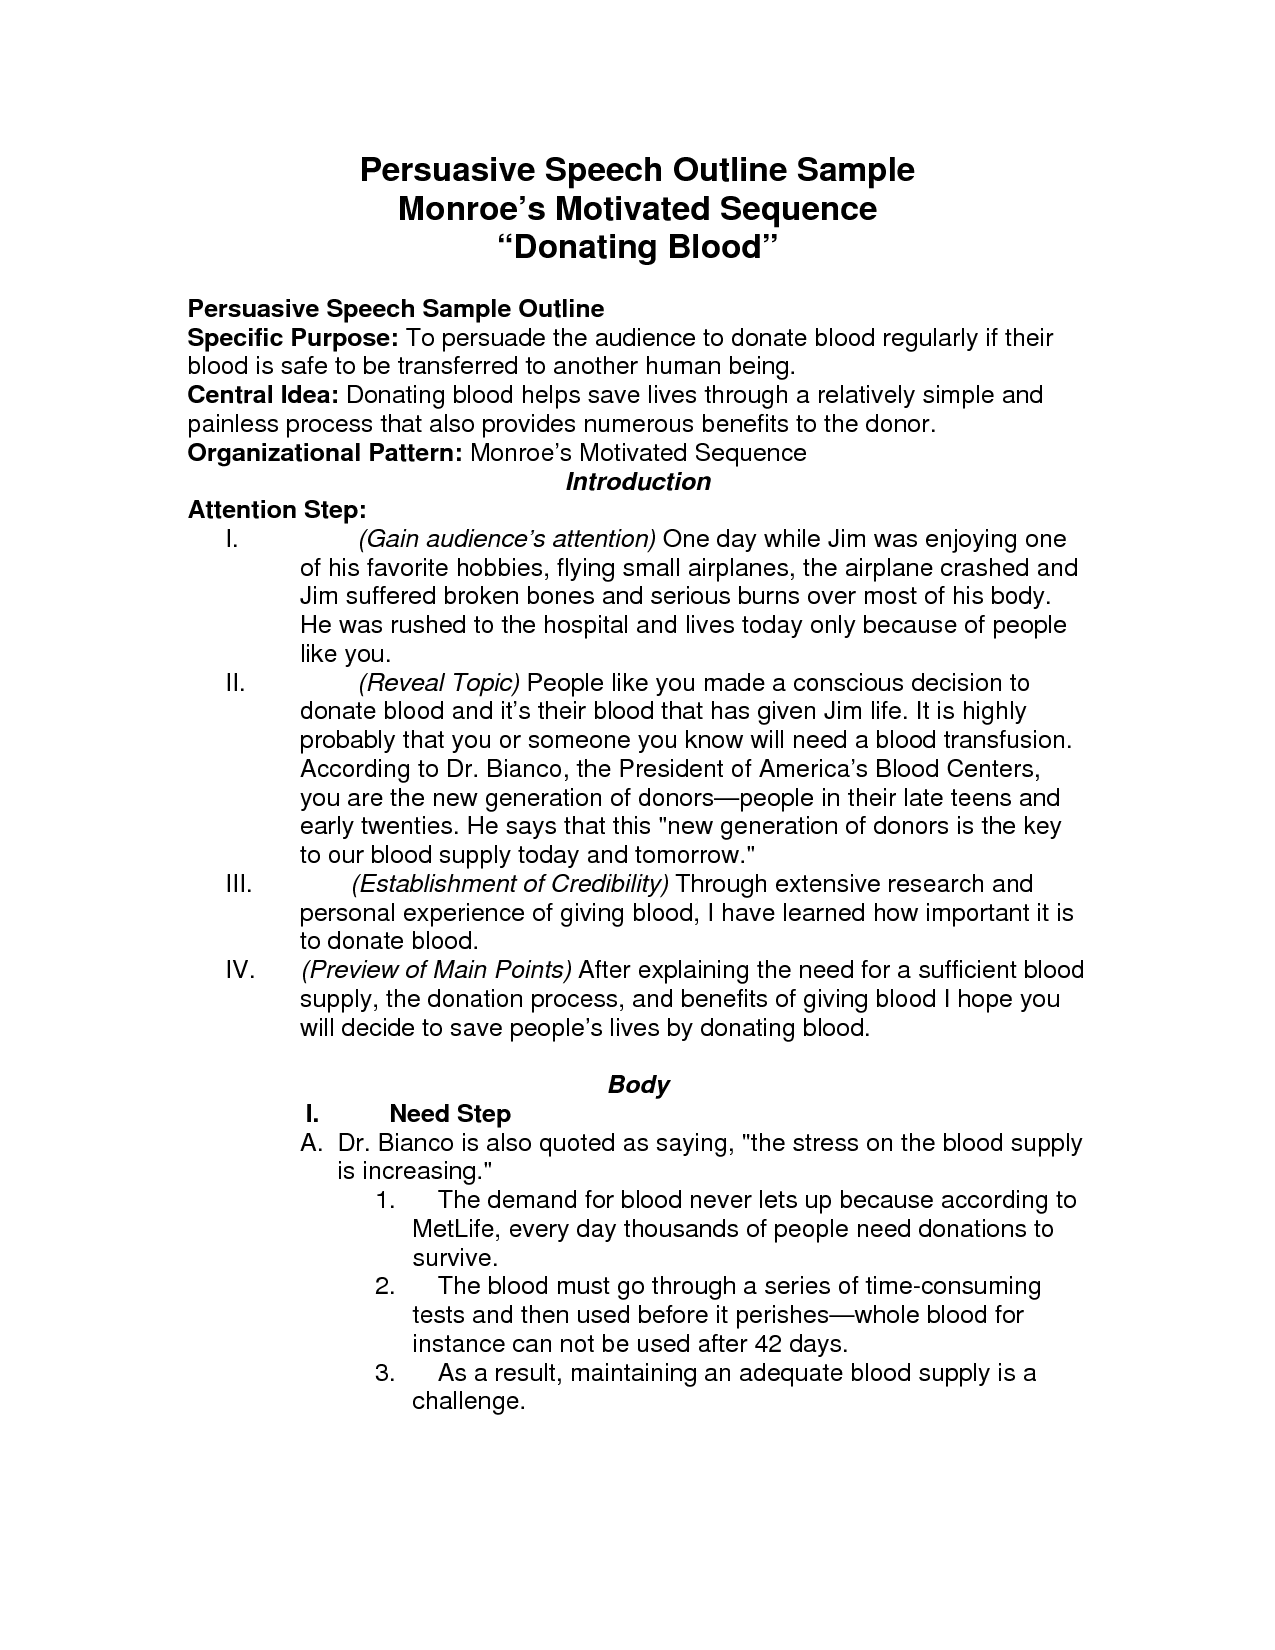 009 Persuasive Essay Speech Outline Template 3tgrxdkt Formidable A Example Of On Gun Control Full